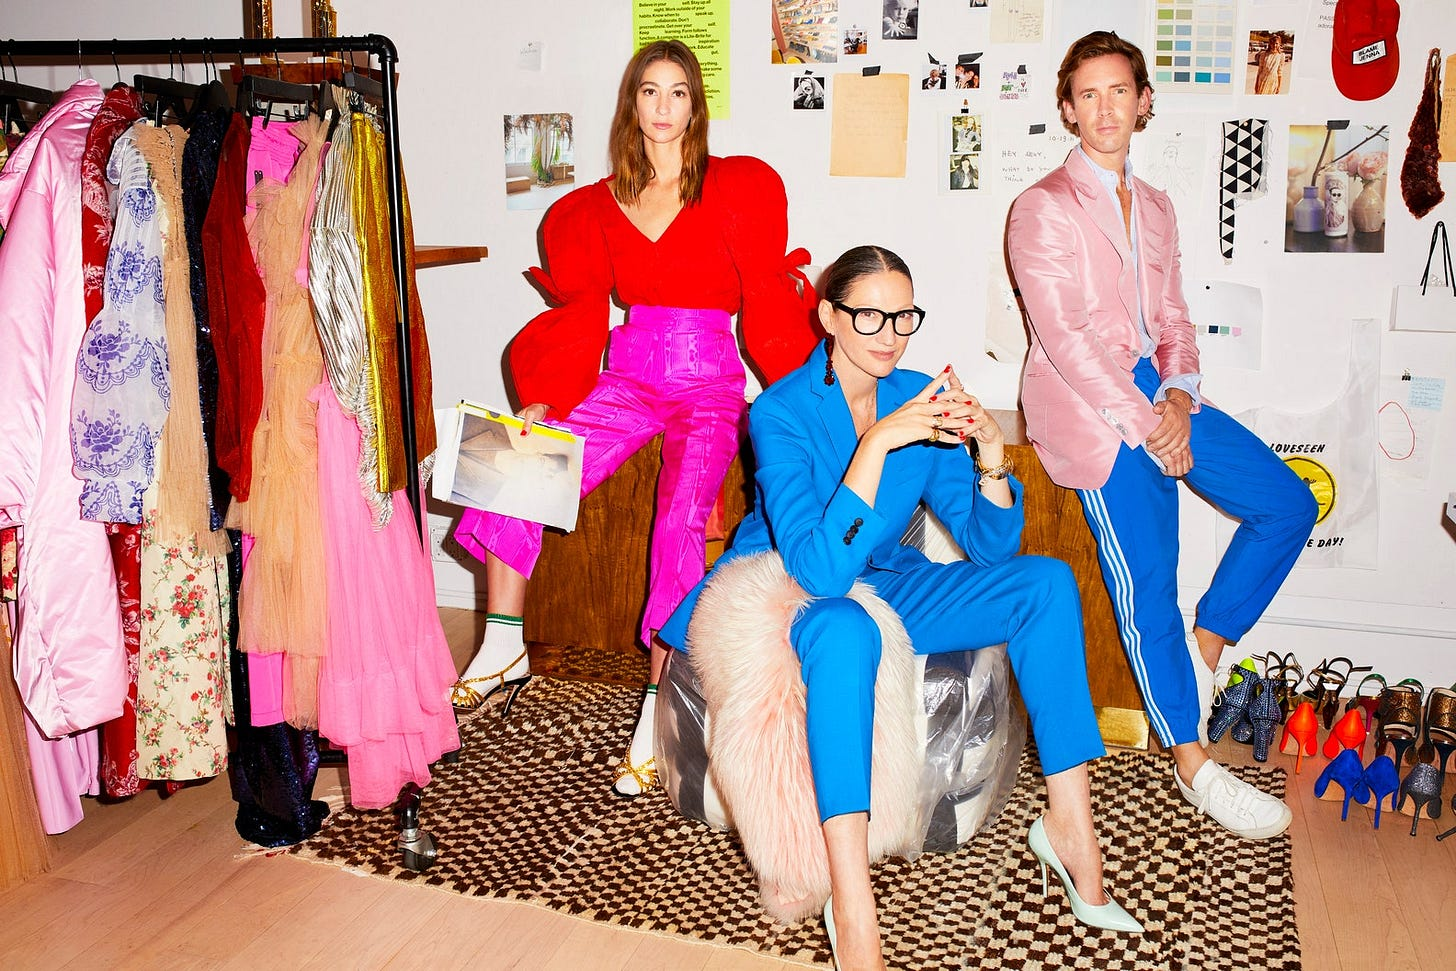 Former J.Crew Executive Jenna Lyons Speaks to AD About Her New HBO Max Show  | Architectural Digest